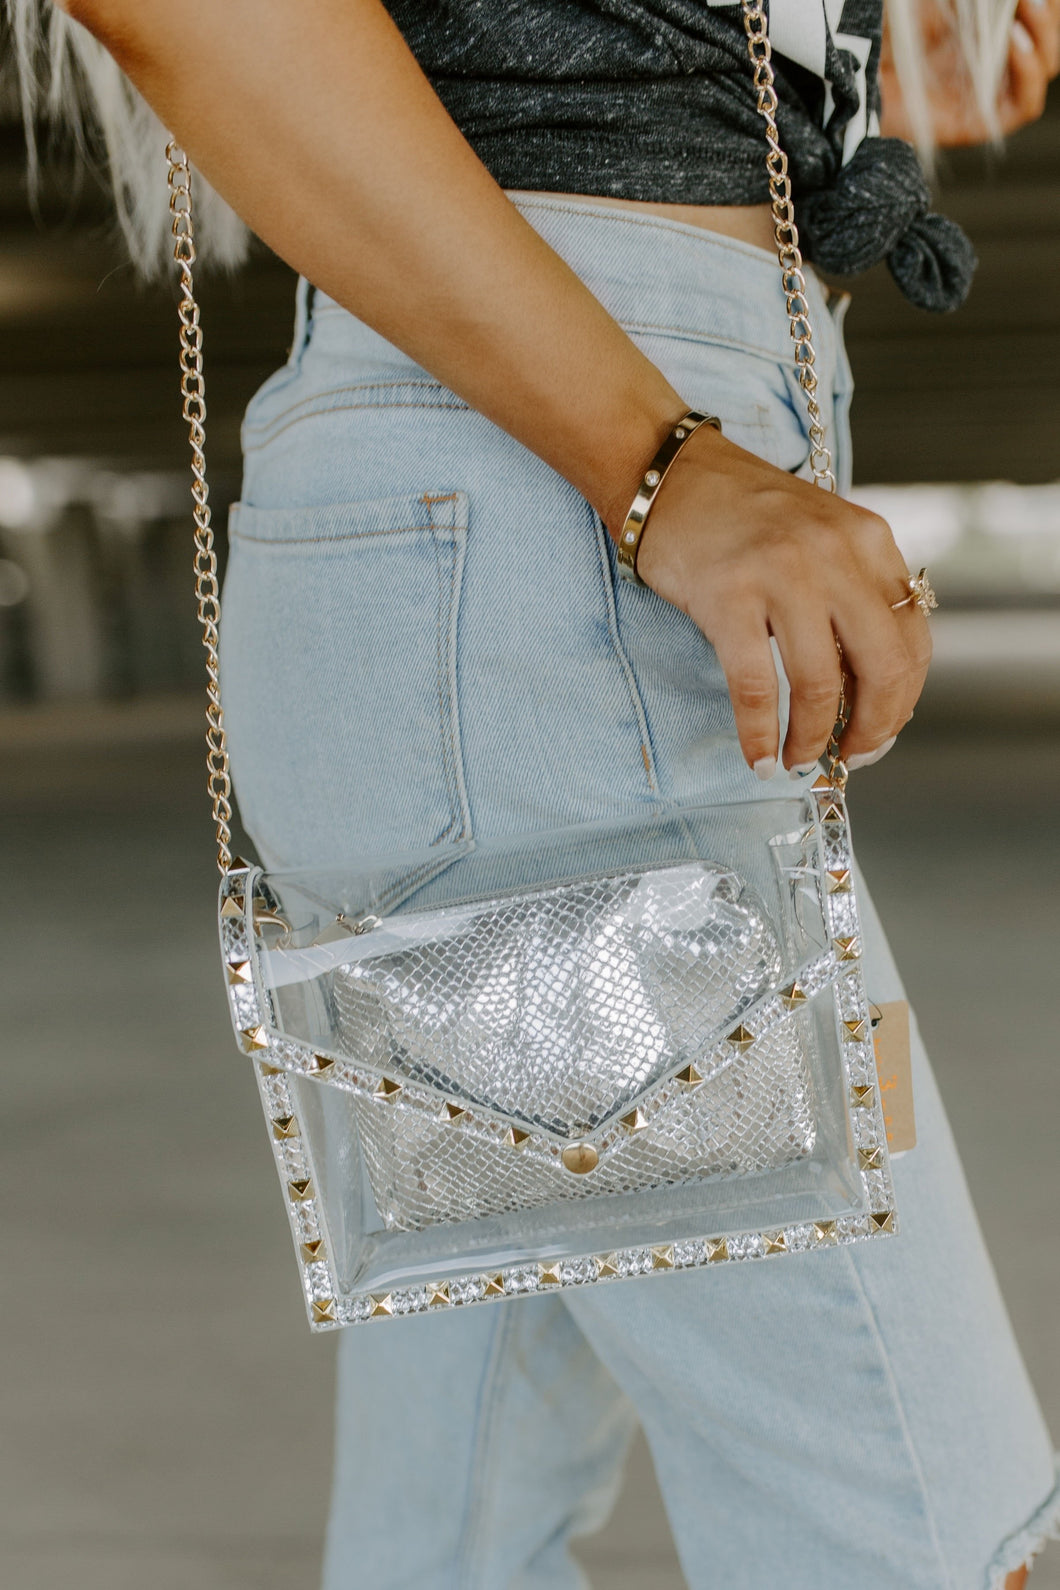 Stadium Lights Studded Clear Clutch - Silver